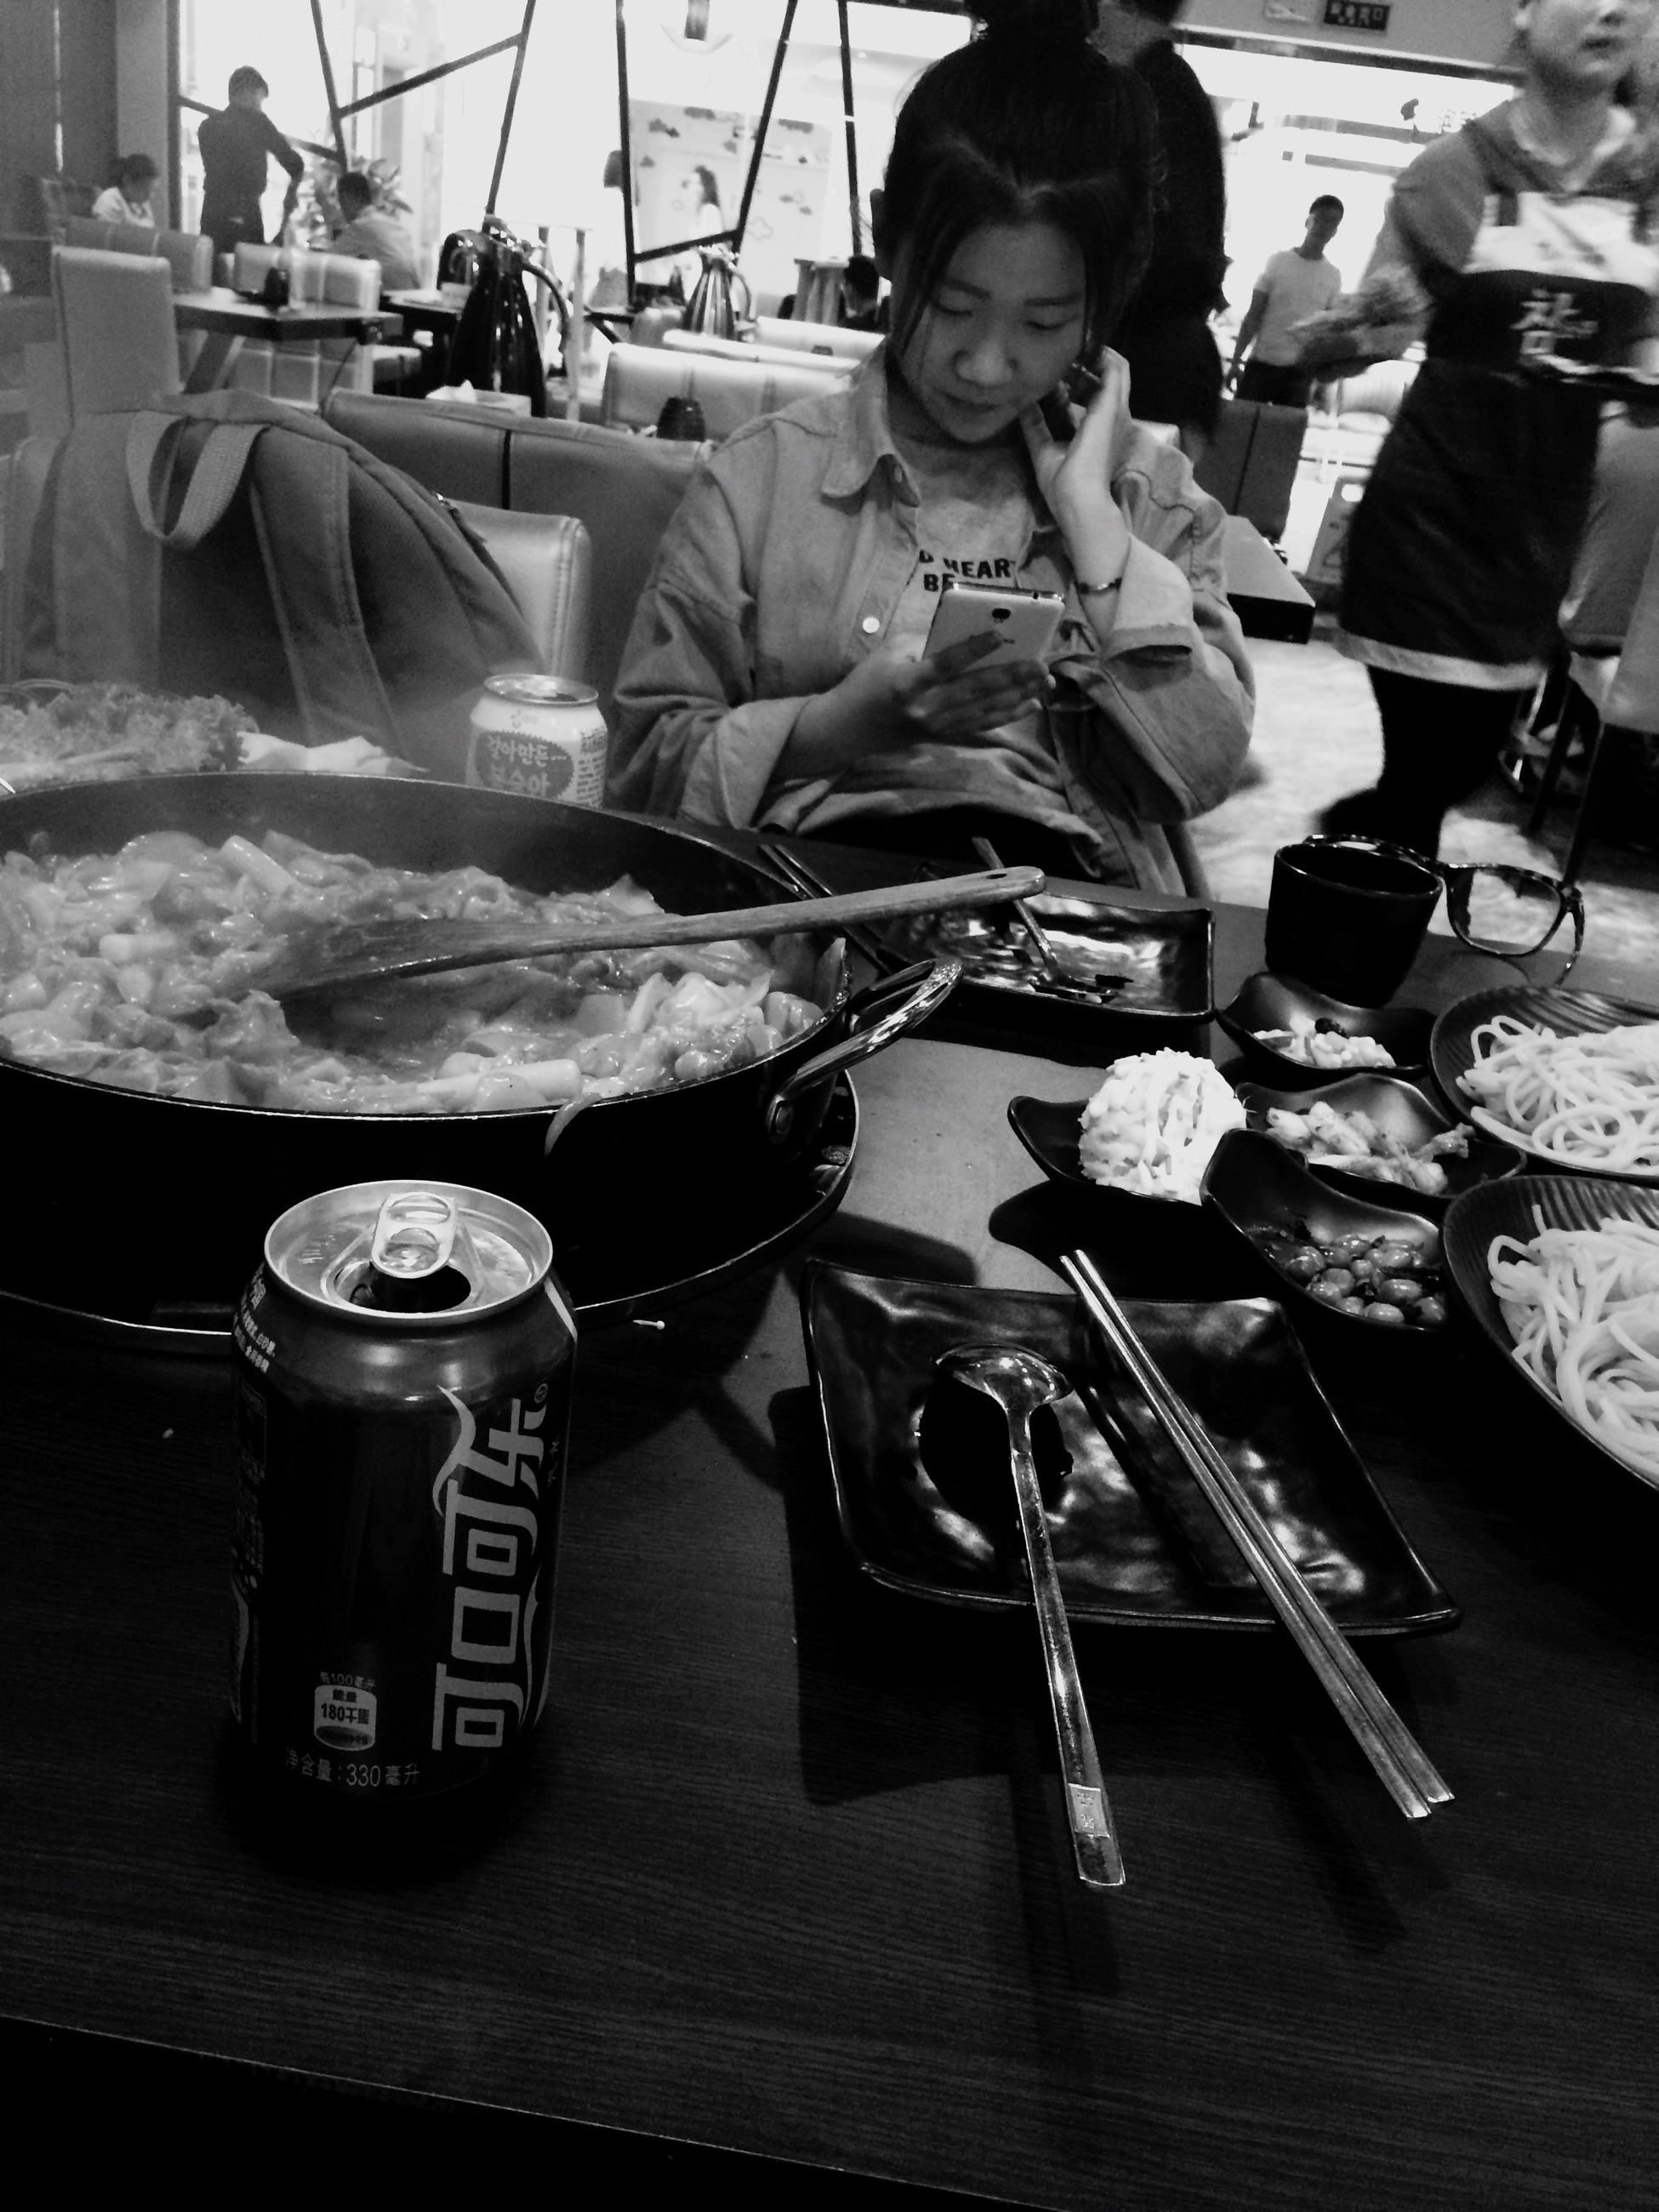 table, indoors, food and drink, men, sitting, lifestyles, restaurant, chair, leisure activity, incidental people, casual clothing, occupation, person, day, food, high angle view, working